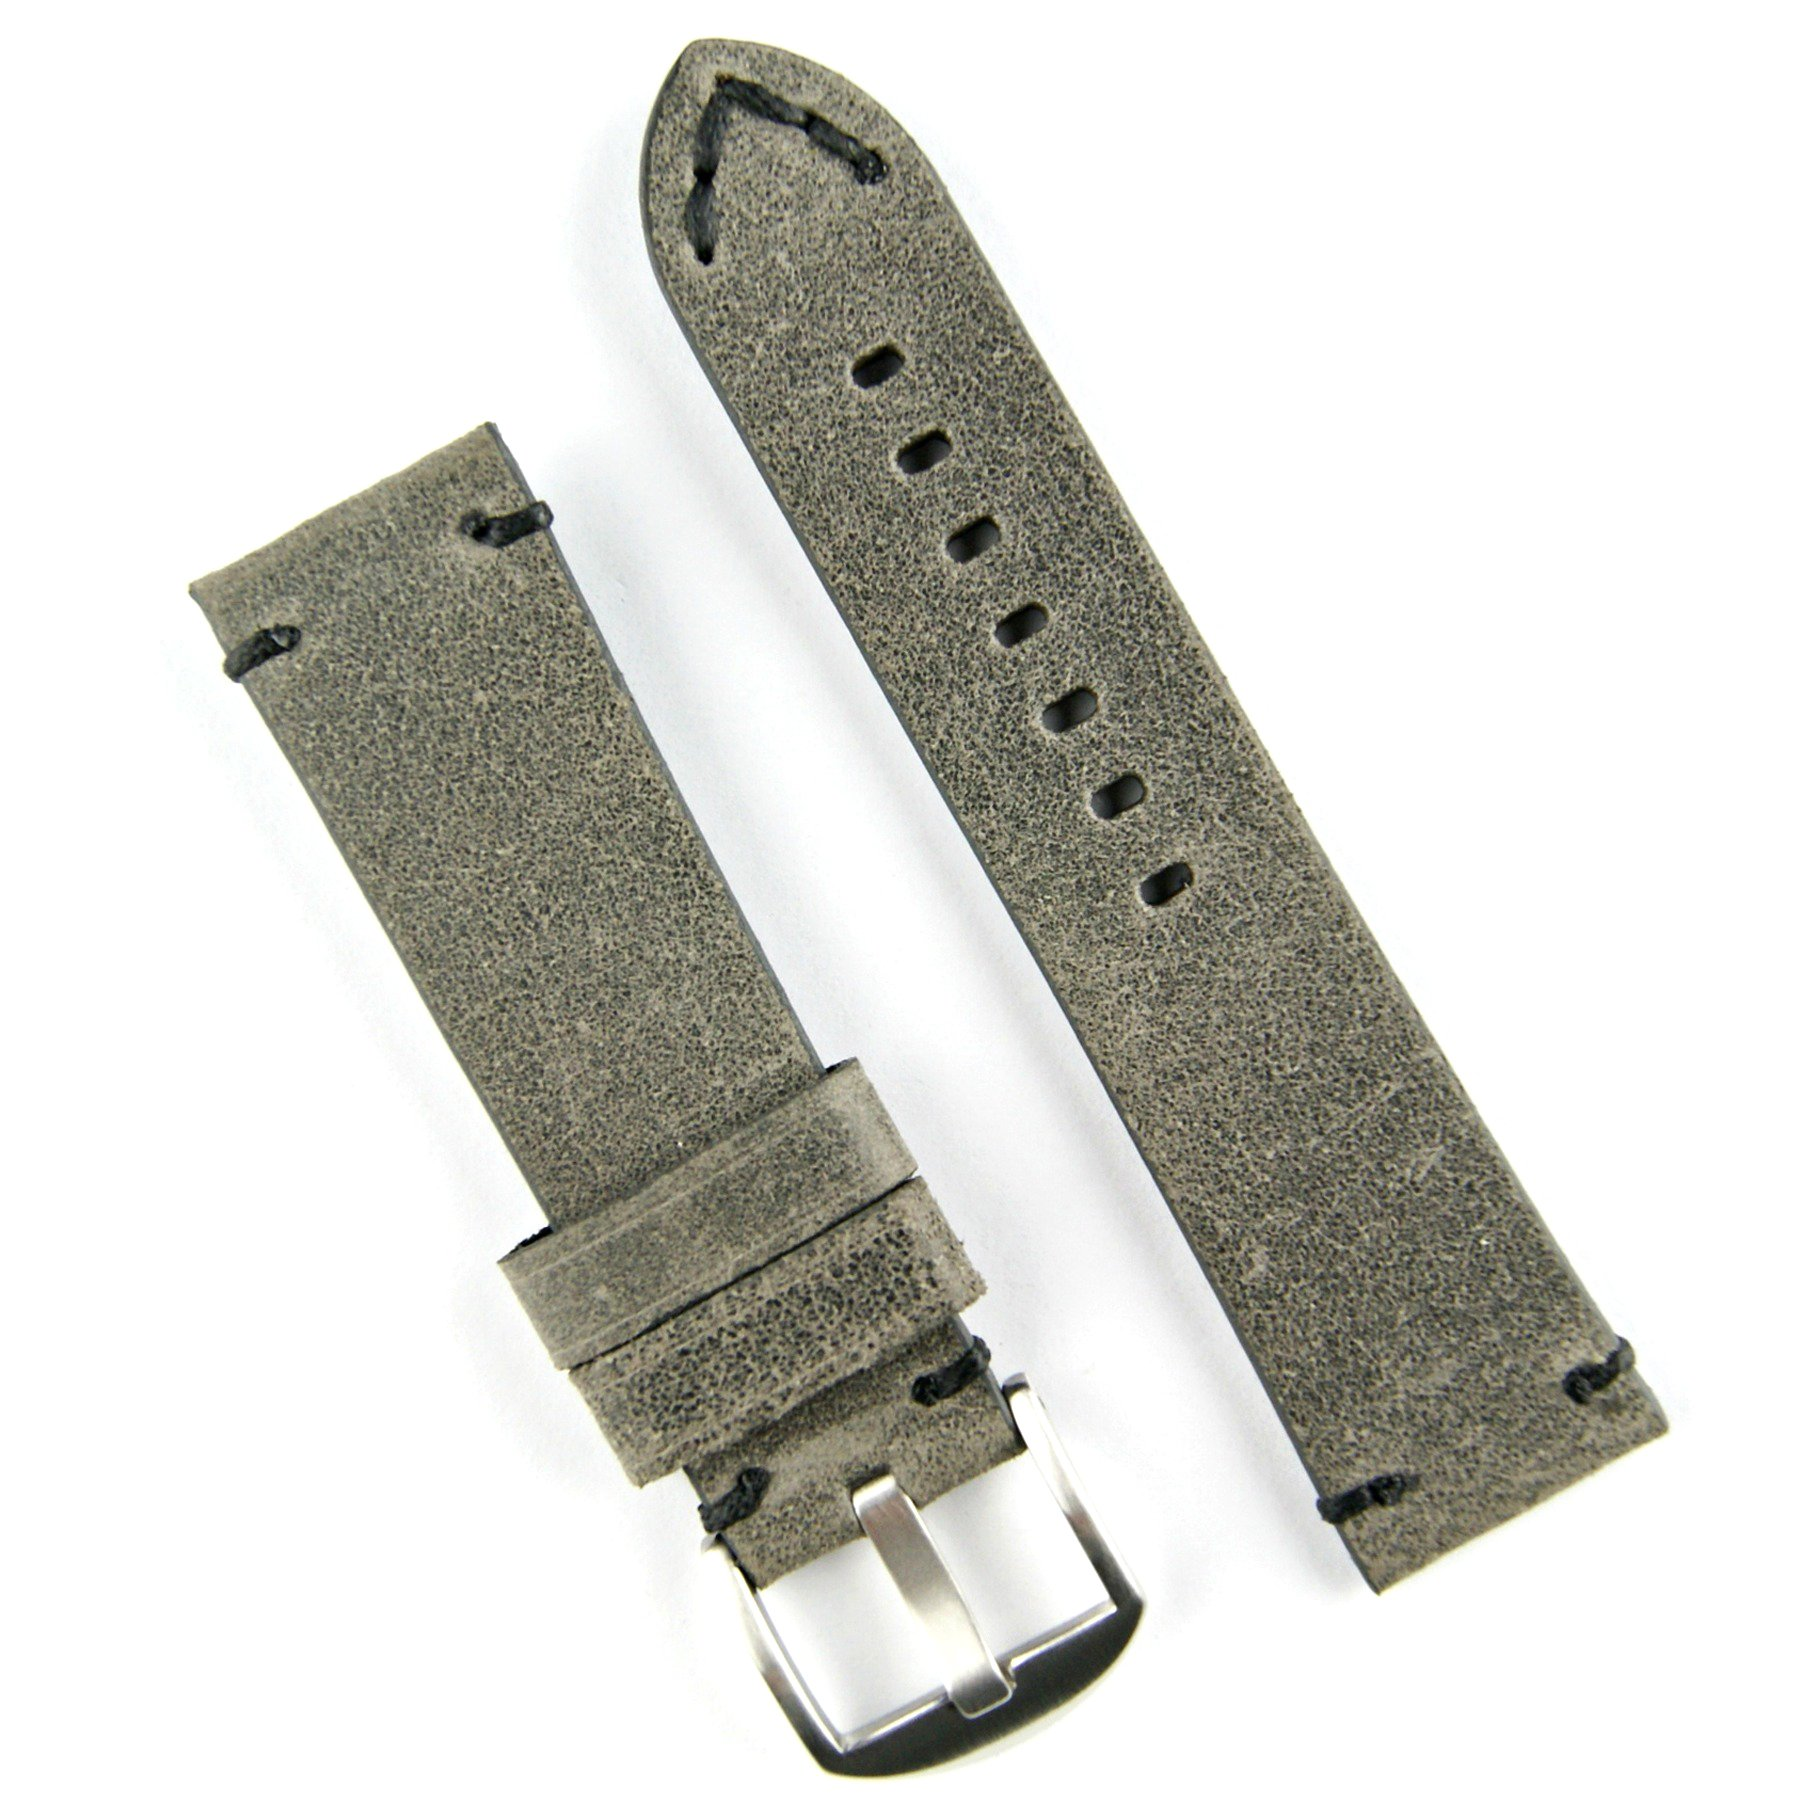 B & R Bands 24mm Charcoal Gray Classic Vintage Leather Watch Band Strap Black Stitch - Large Length